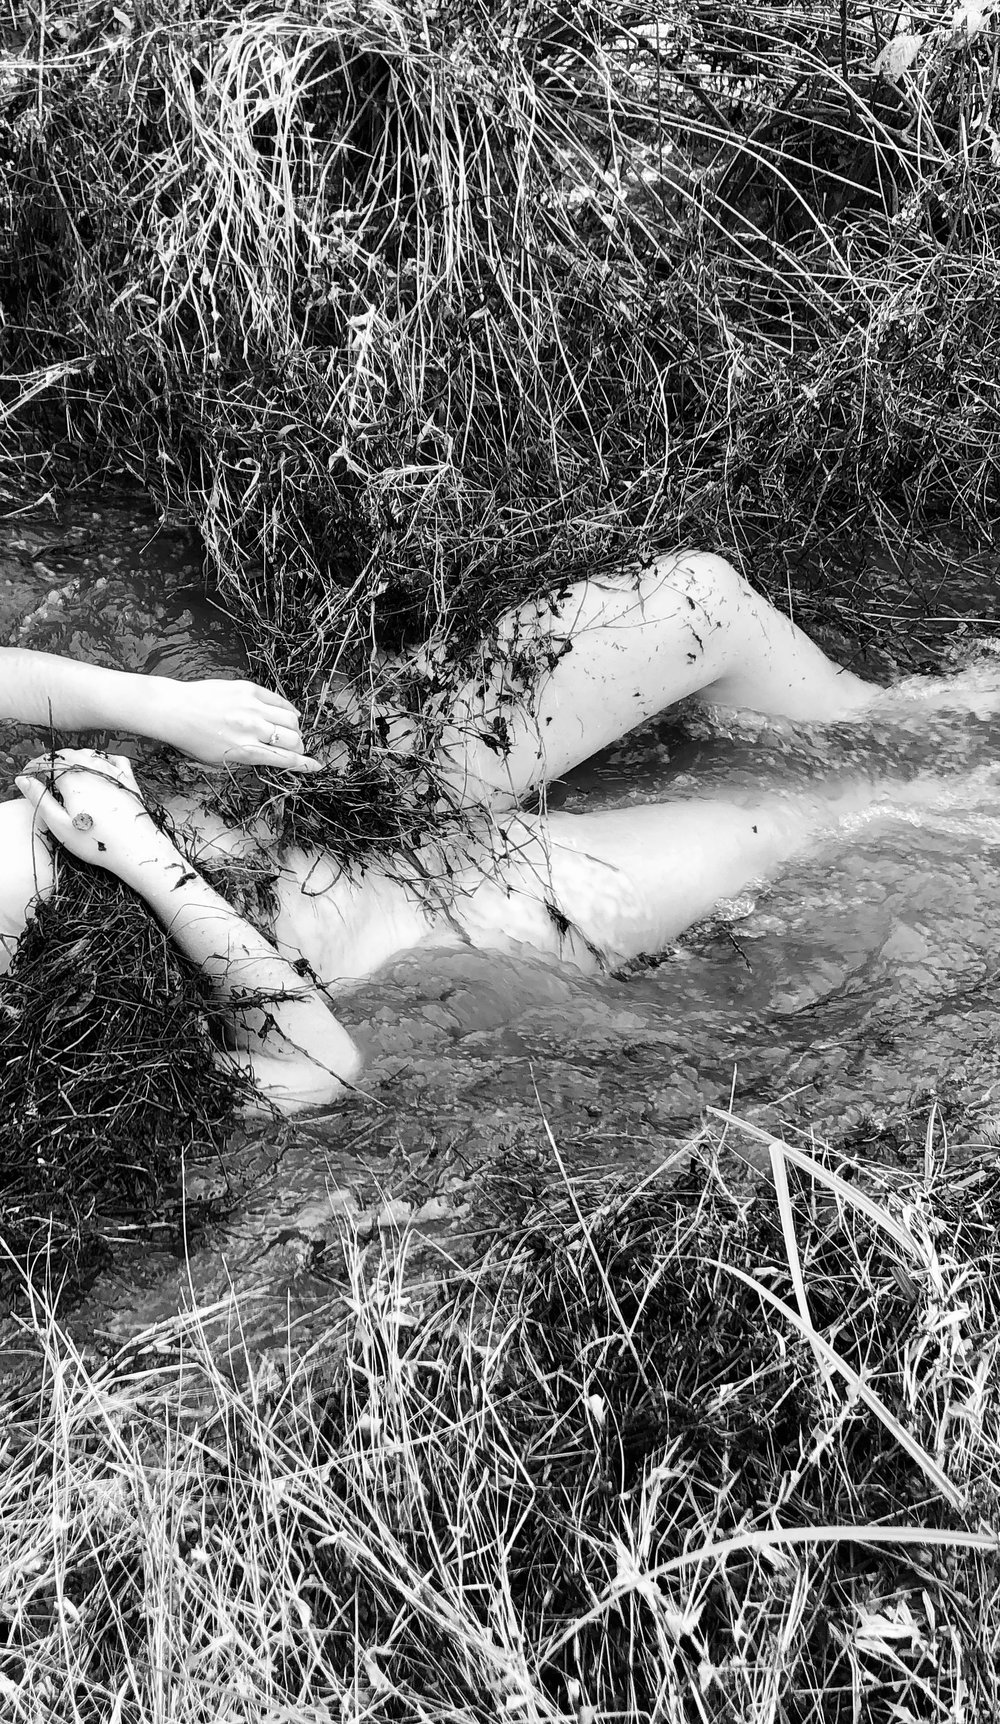 Bodies in the Landscape